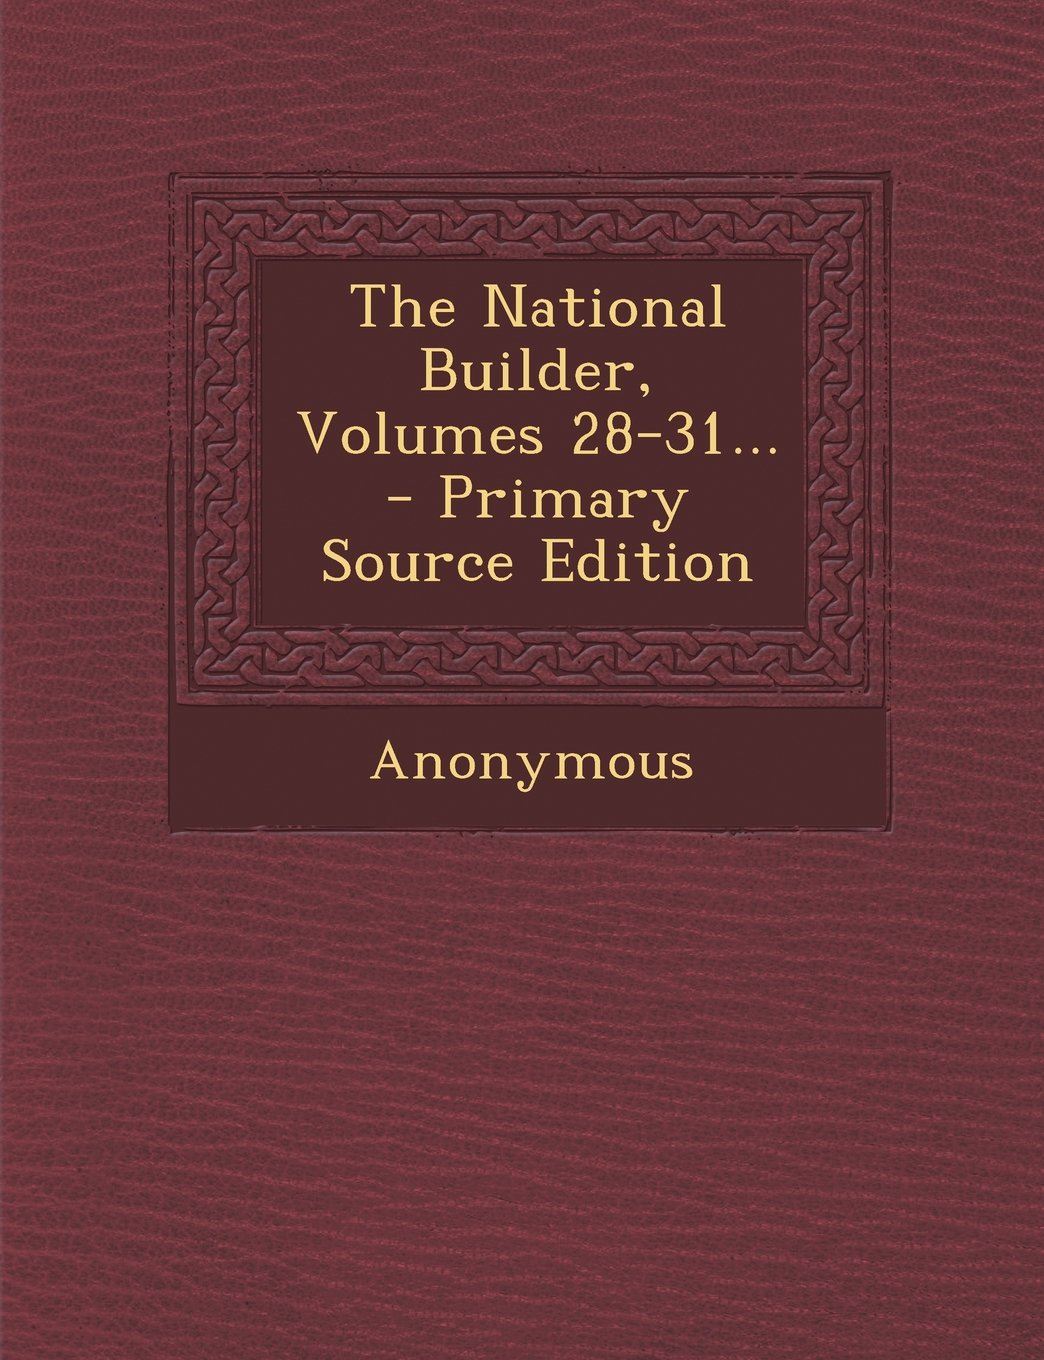 The National Builder, Volumes 28-31... pdf epub